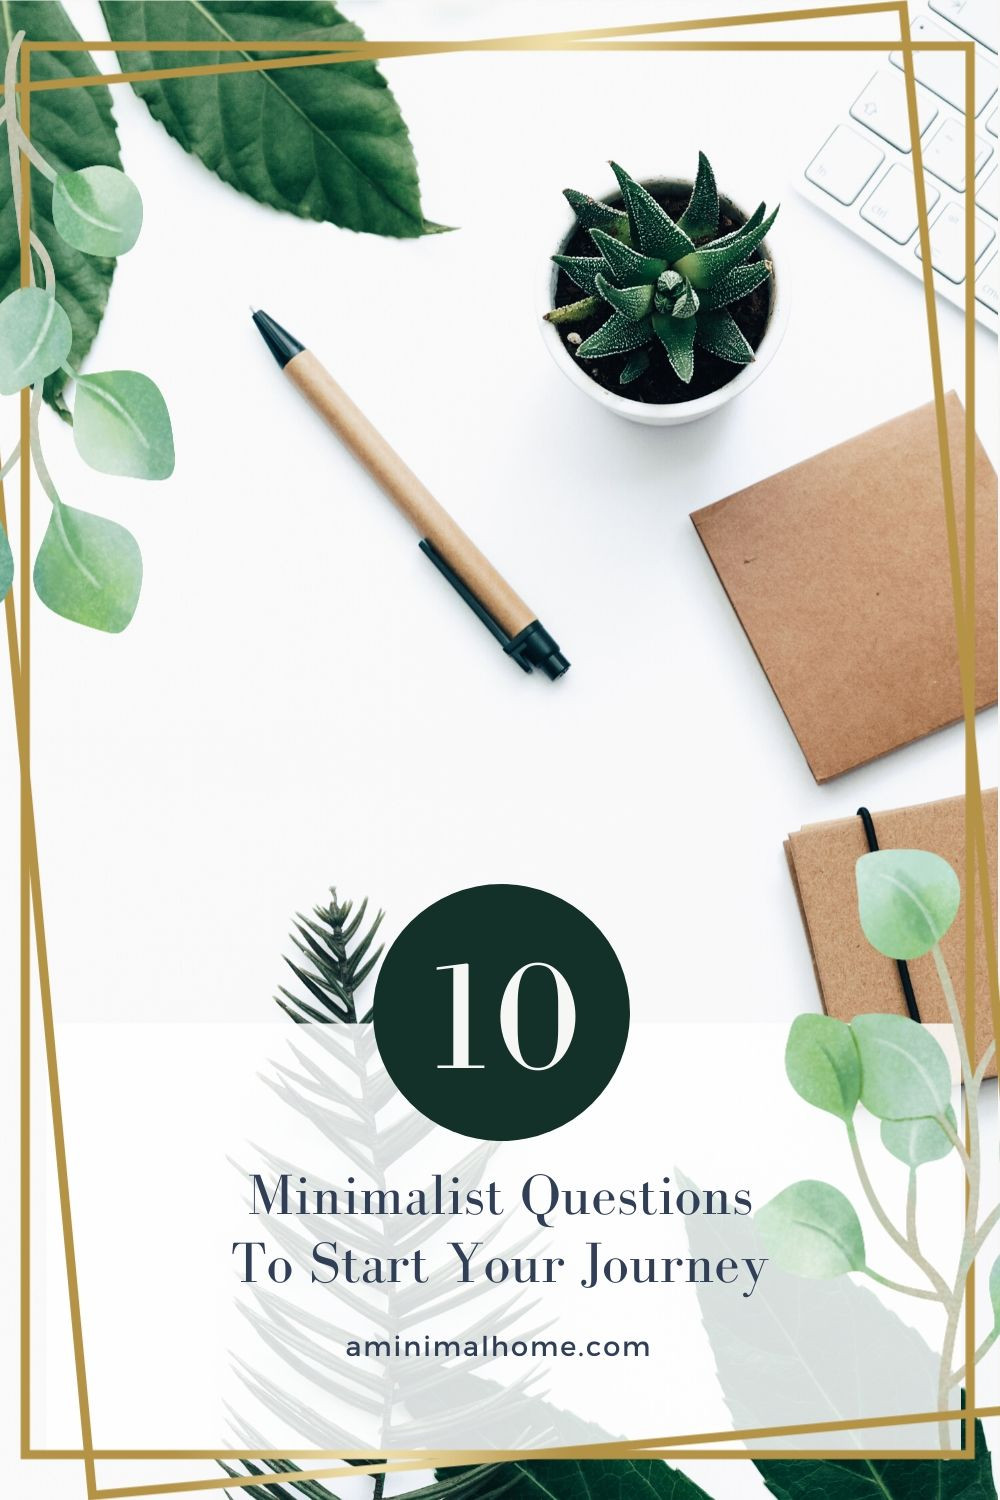 10 minimalist questions to start you journey